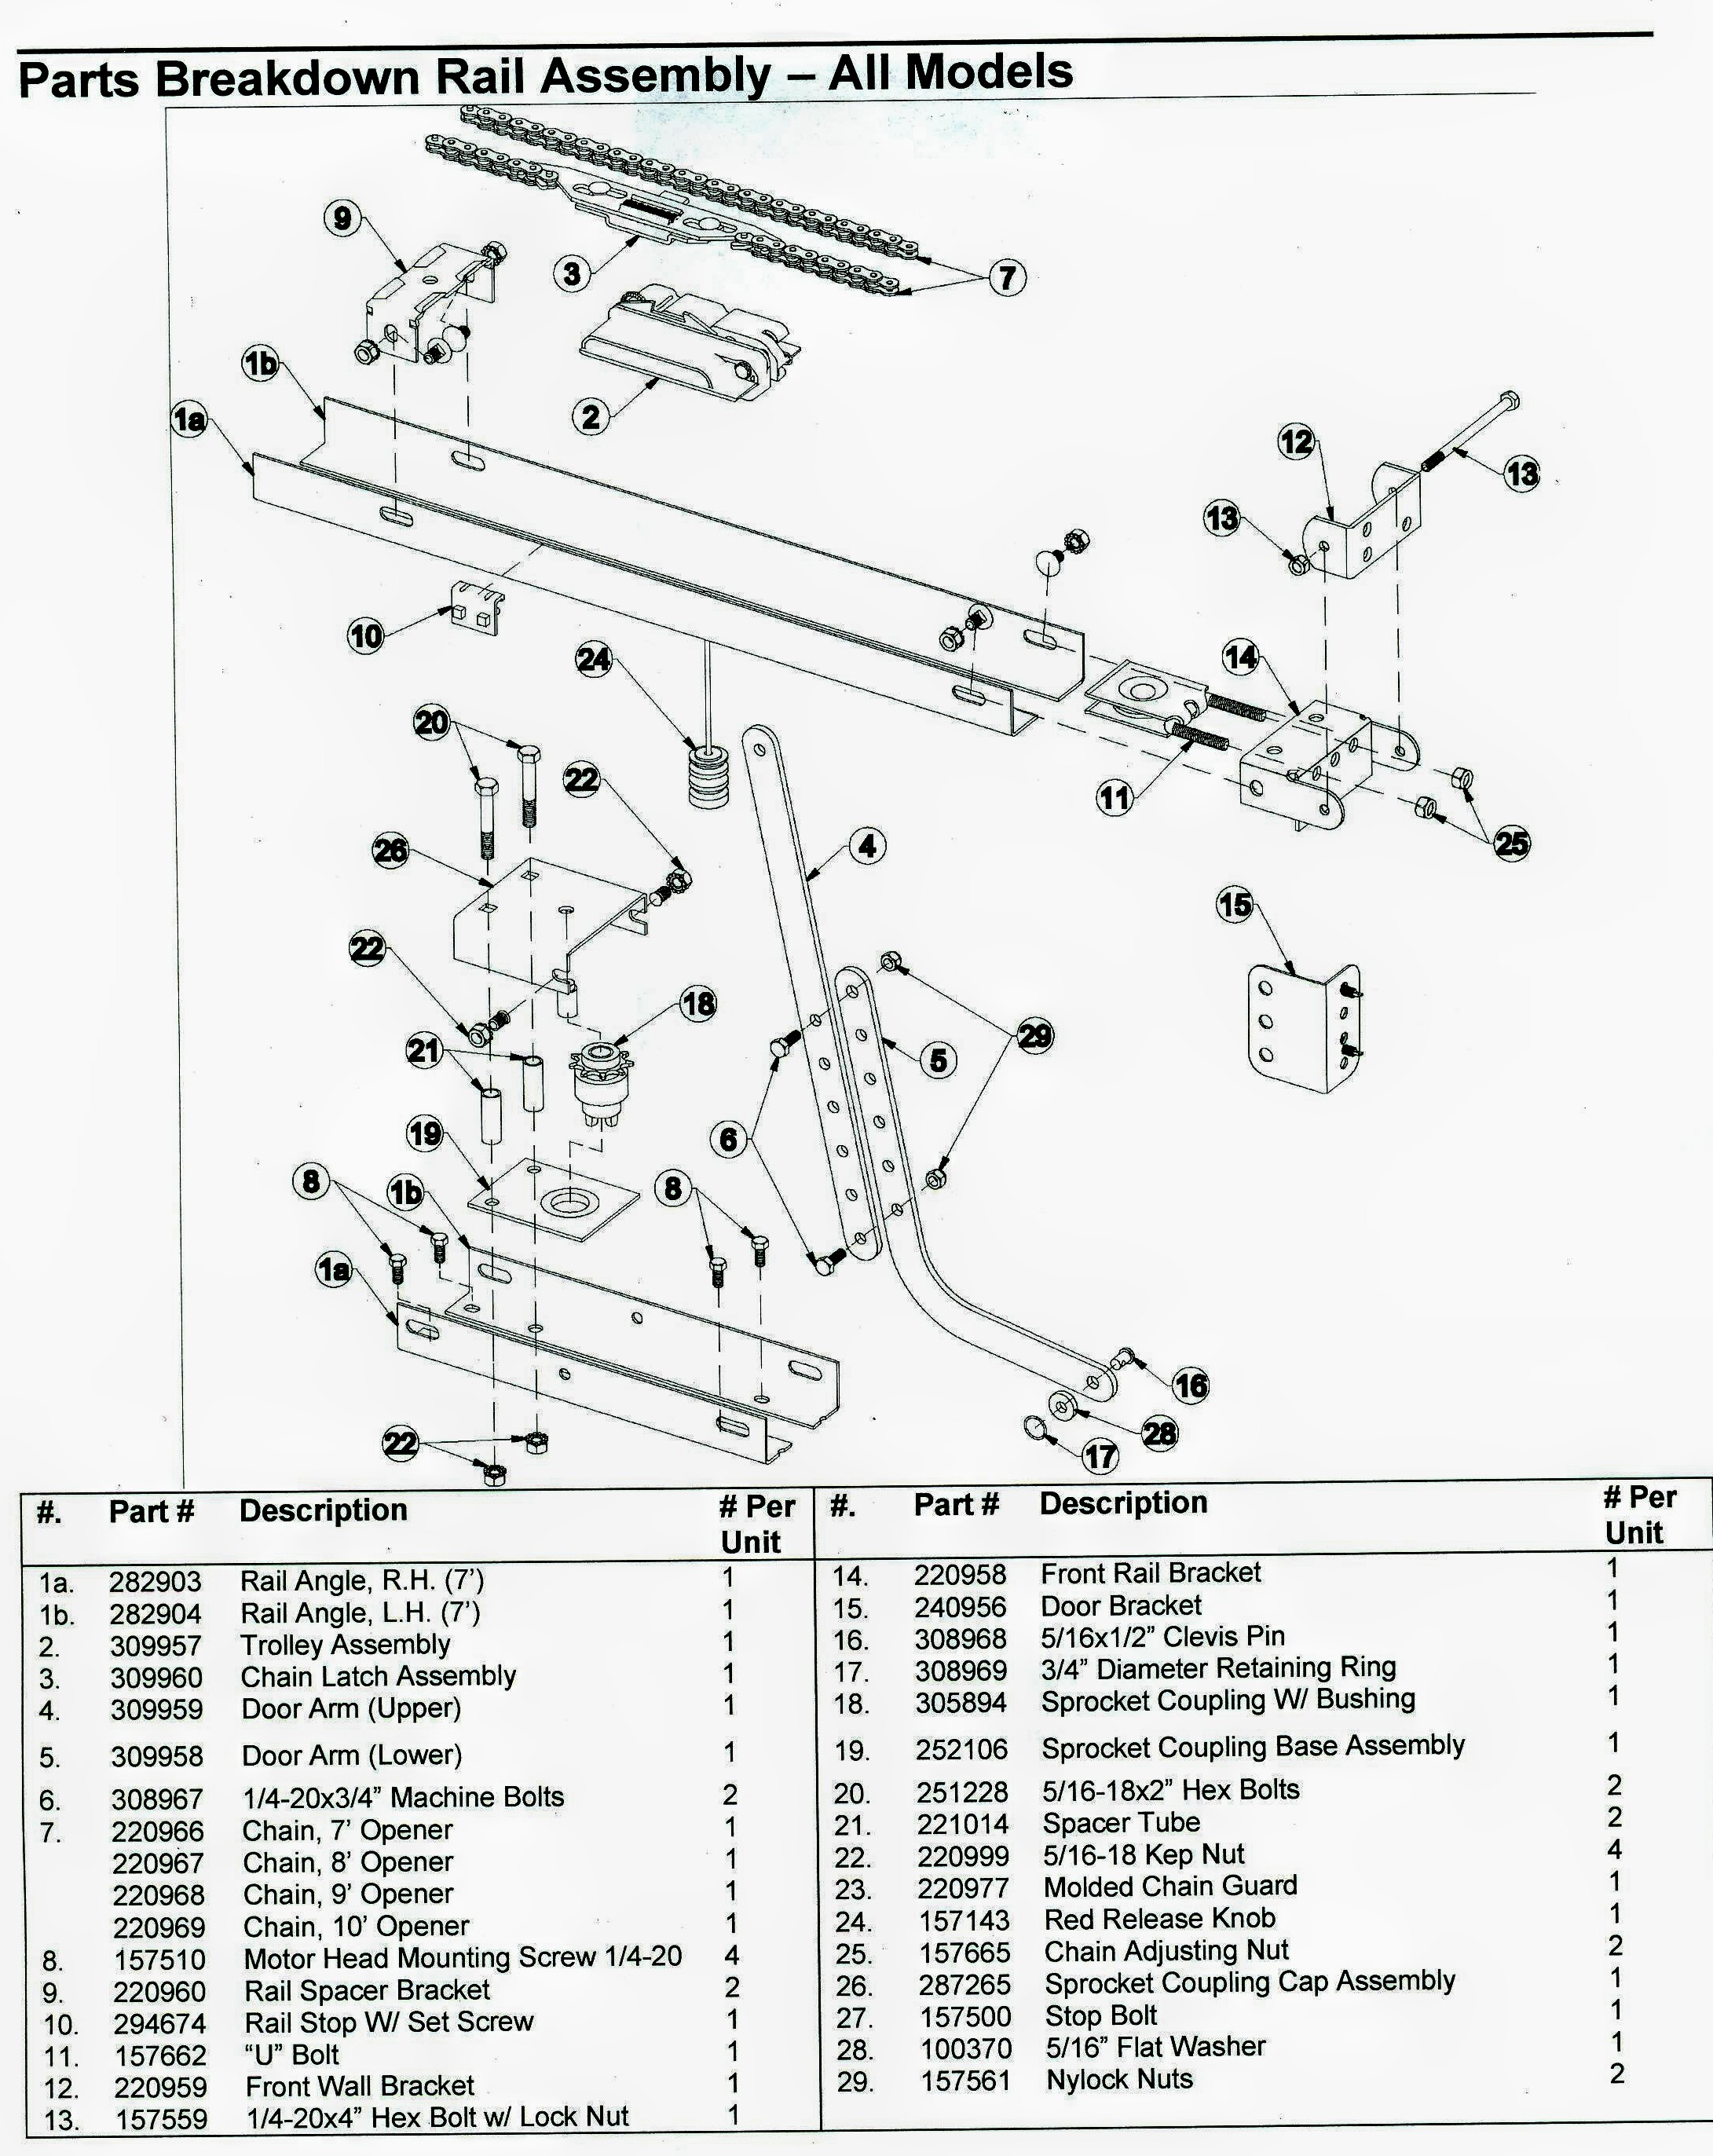 2745 #535B57 Wayne Dalton Quantum Parts Breakdown Category Wayne Dalton Parts save image Garage Doors Replacement Parts 37272181